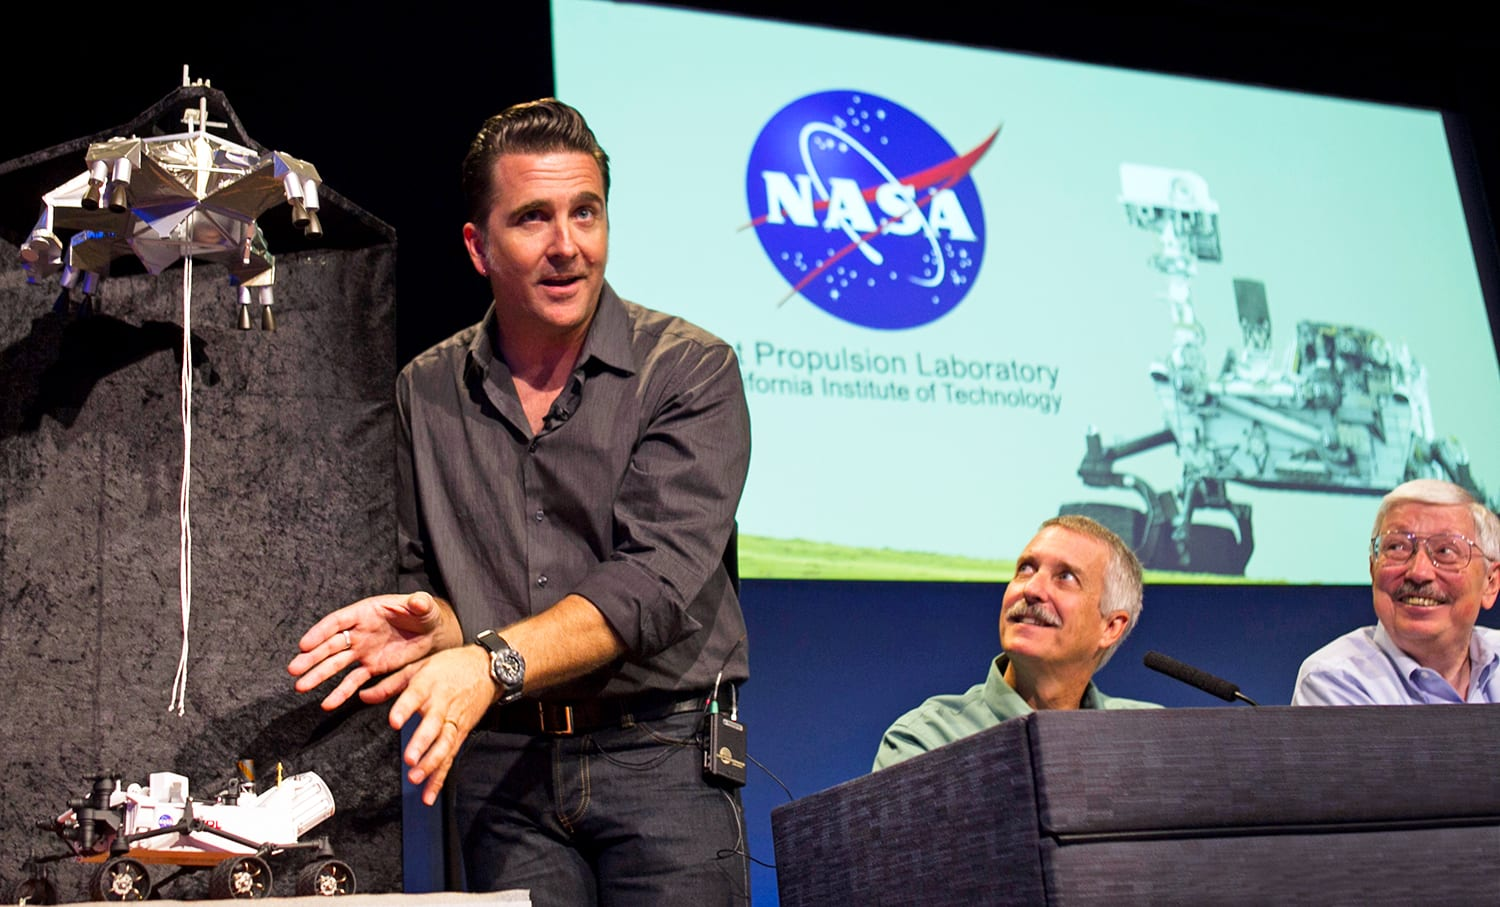 An interview with one of NASA's Curiosity Rover engineers